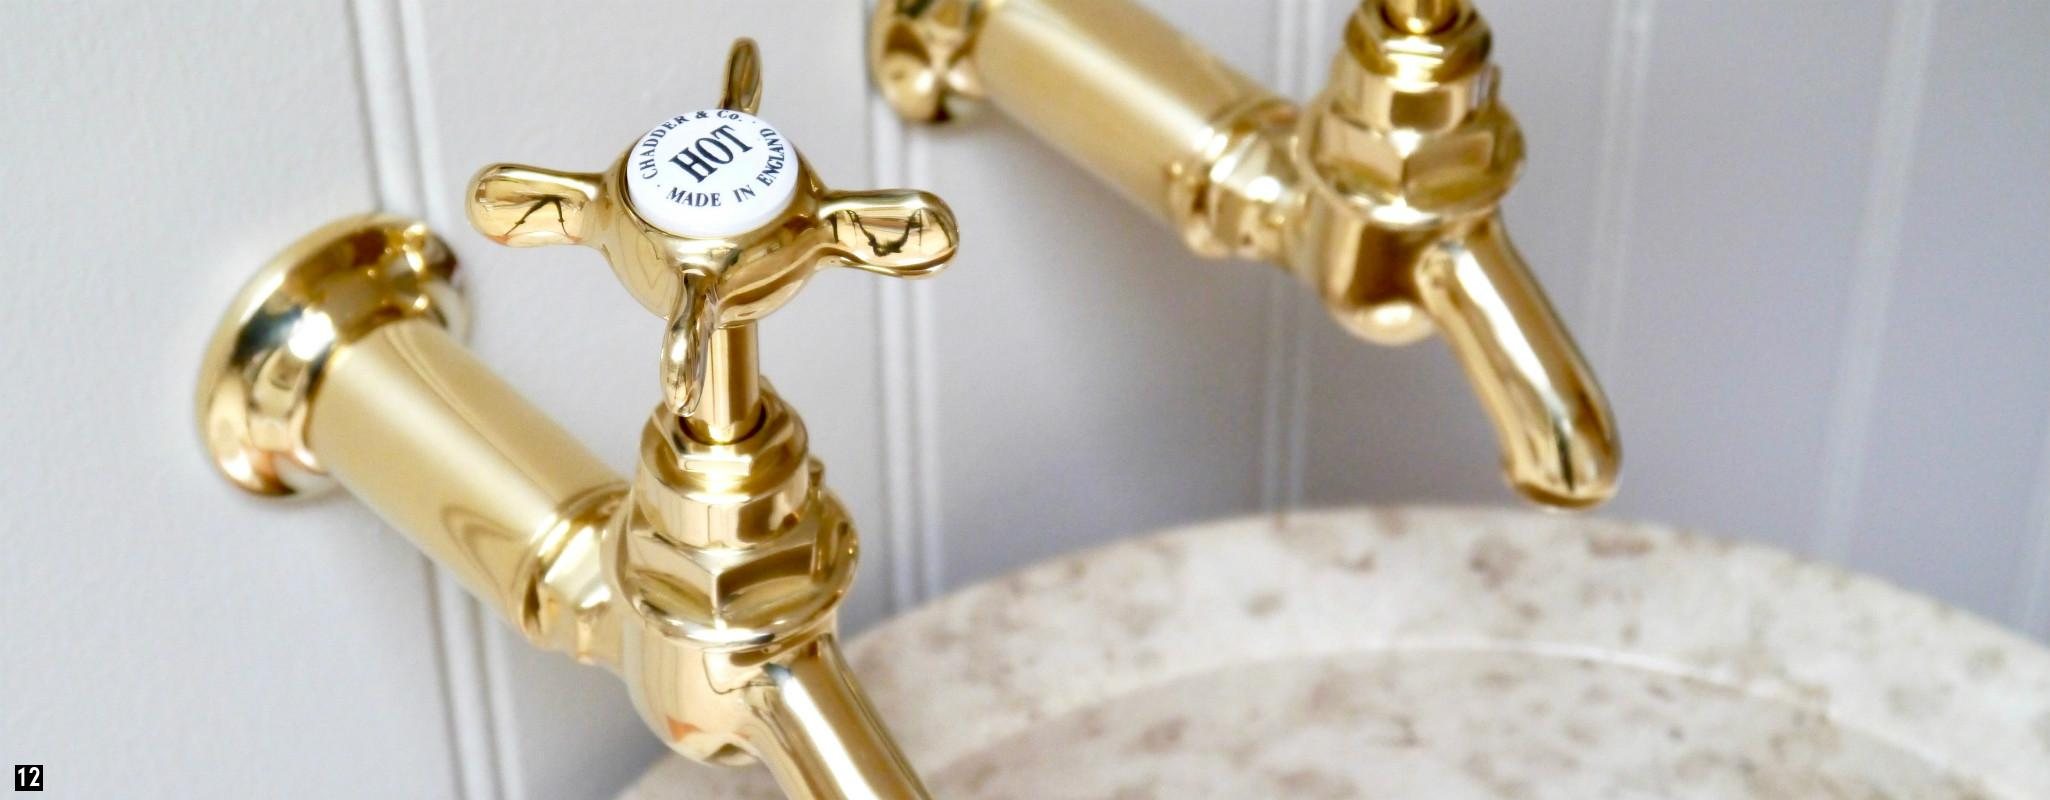 Kitchen Taps & Mixers | Product Categories | Chadder & Co.